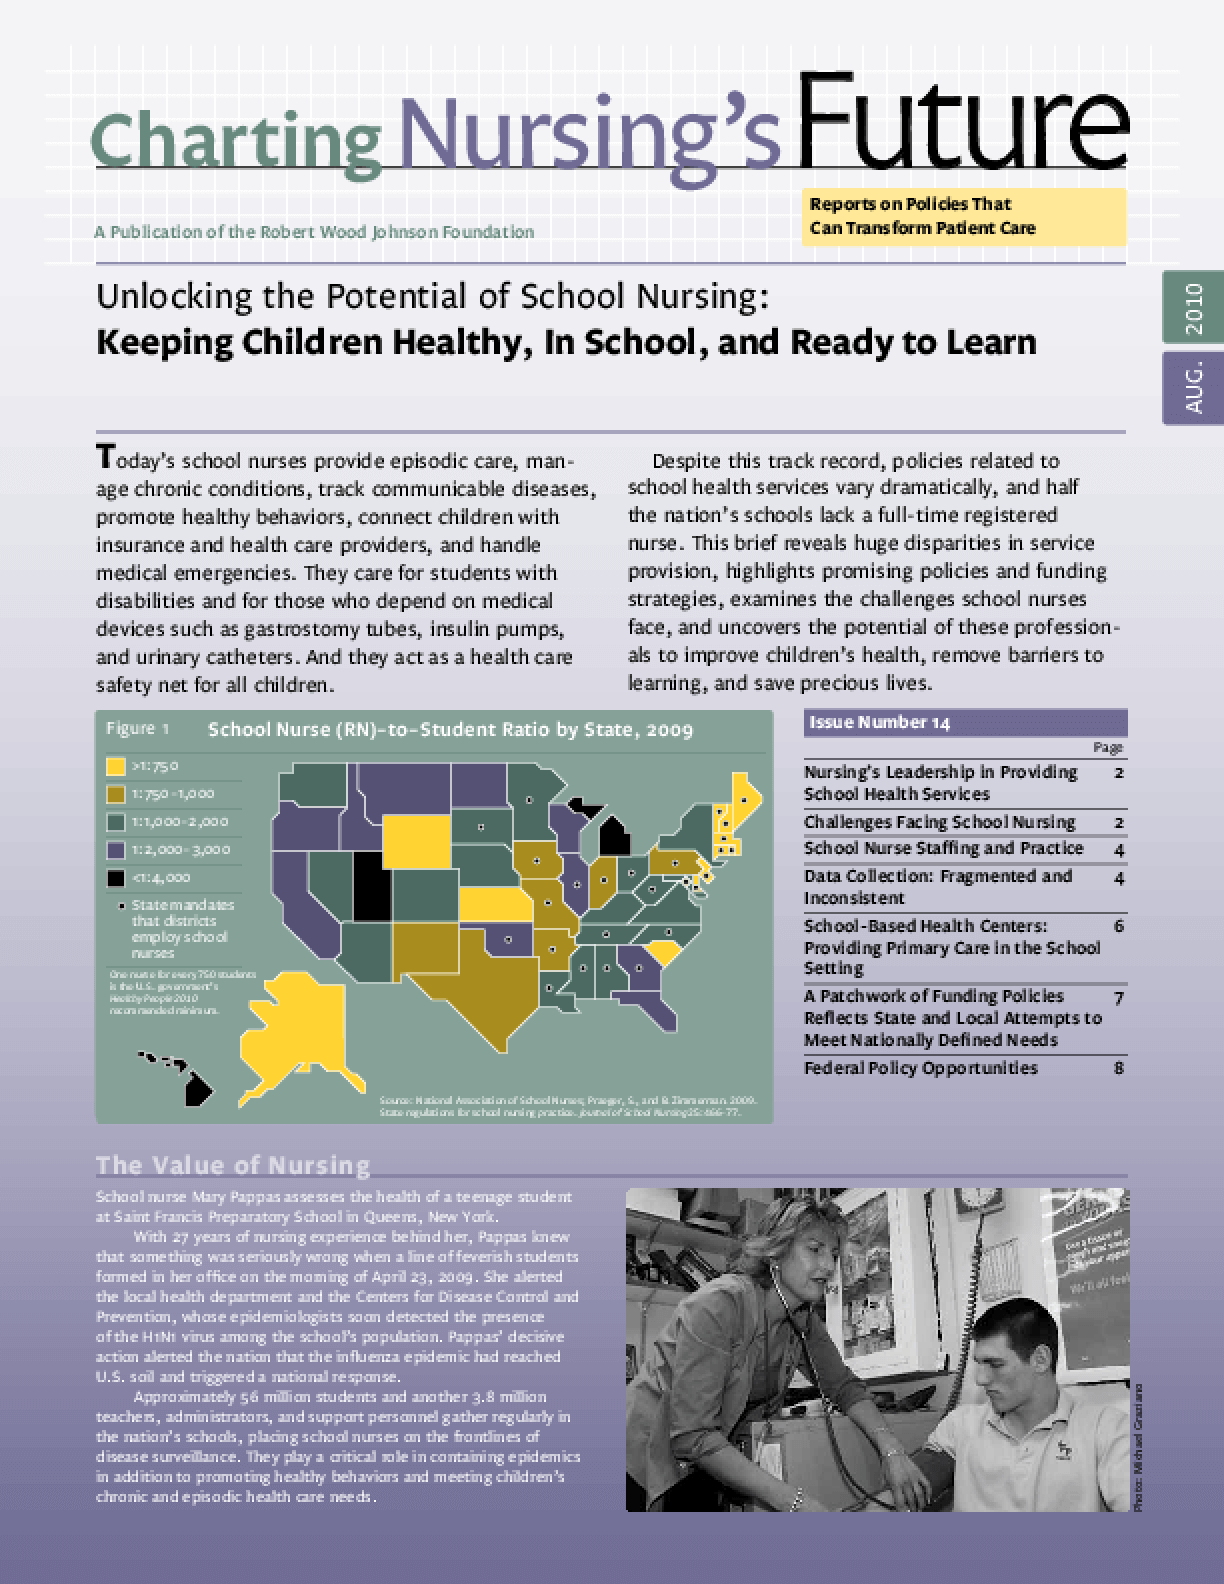 Unlocking the Potential of School Nursing: Keeping Children Healthy, in School, and Ready to Learn